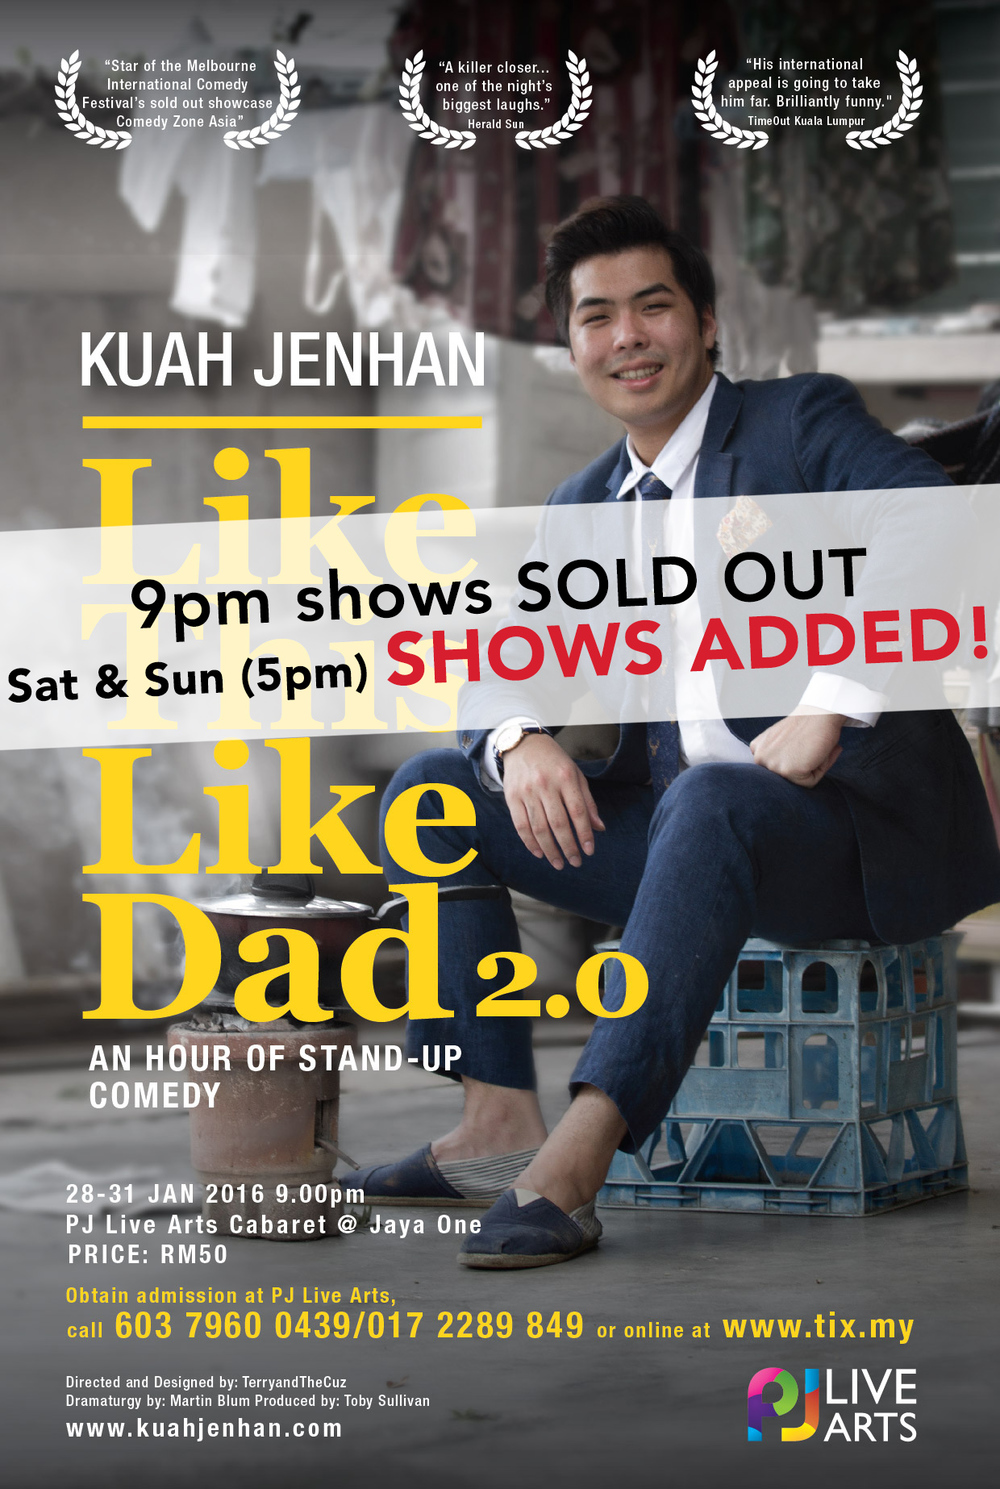 Comedy scene favourite* Kuah Jenhan comes back with 'Like This Like Dad 2.0', a one hour stand-up comedy show. Expect sentimental laugh-out-loud monologues inspired by nostalgia and lessons from the comedian's late father — be it good, bad or ridiculous. Maybe he is like this, because he is like Dad.  *maybe